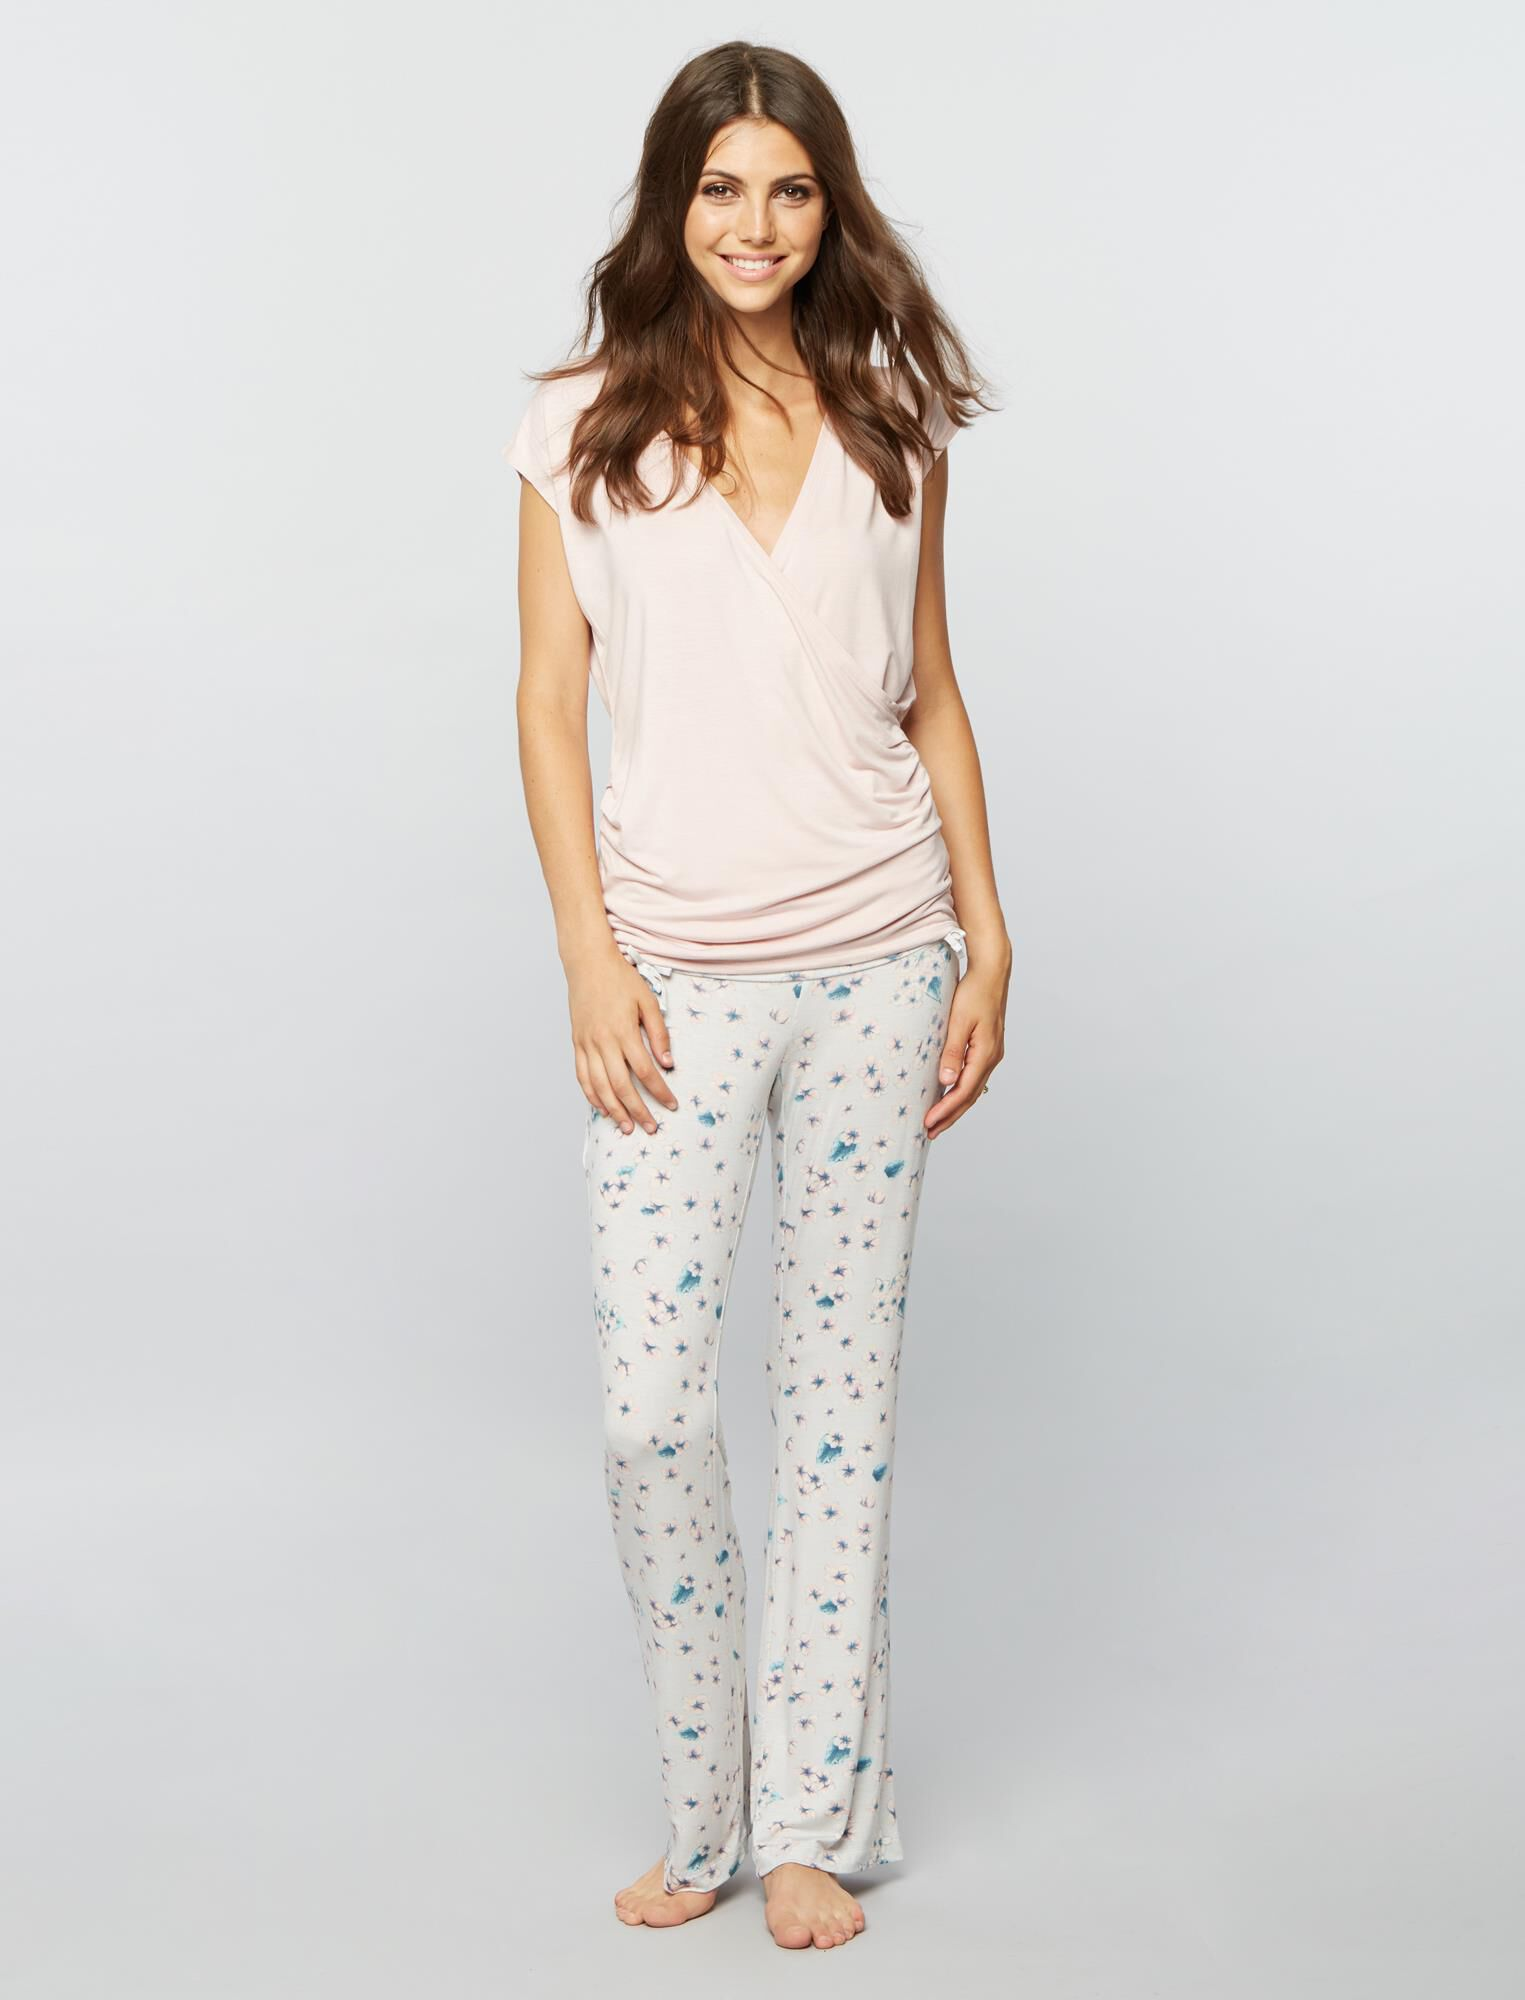 Bow Detail Maternity Sleep Pants- Prints